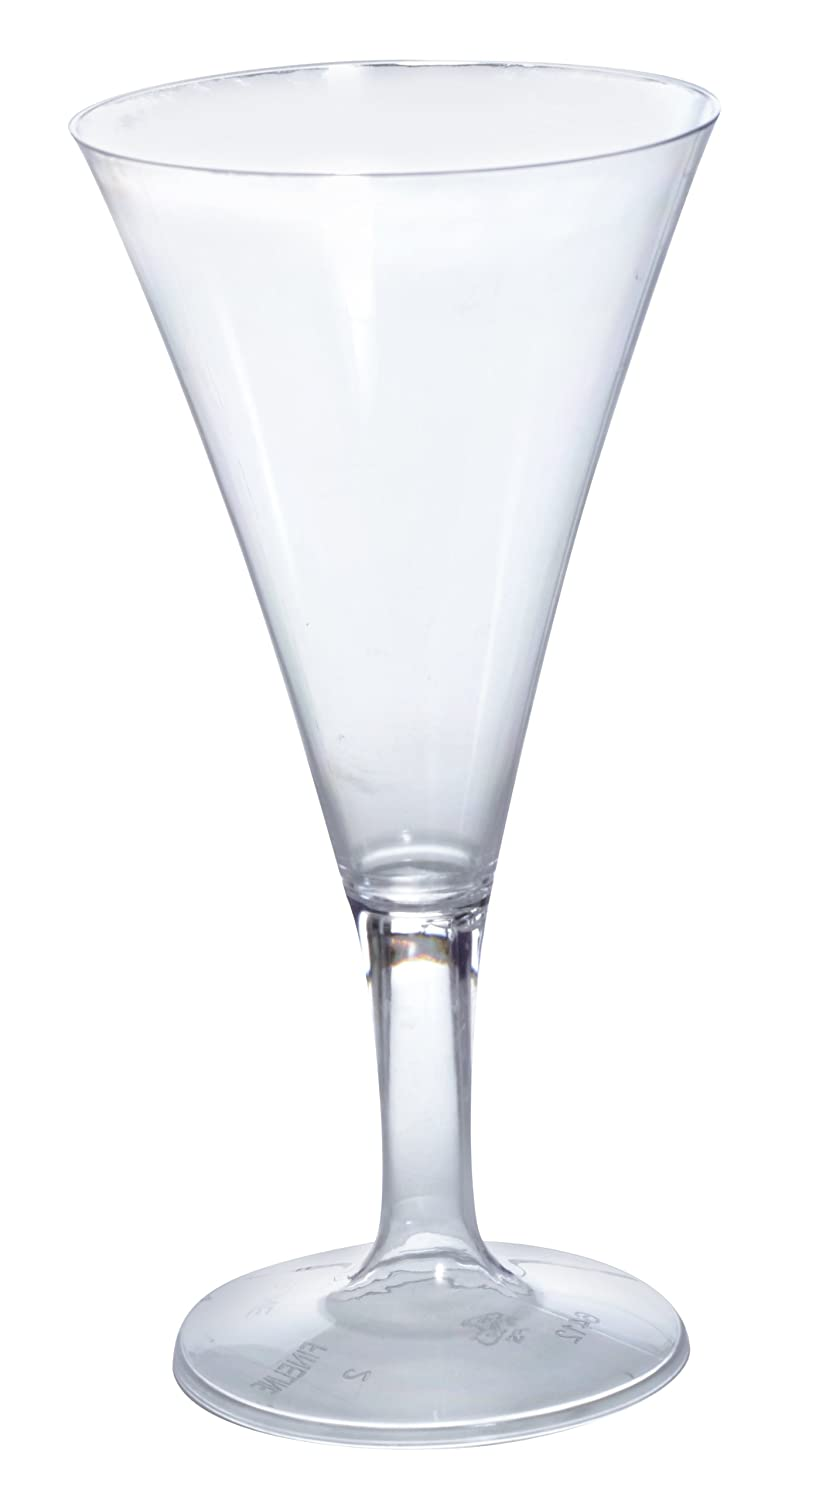 Fineline Settings Tiny Temptations Clear One Piece 2 Oz. Tiny Champagne Glass 96 Pieces Fine Line Settings Inc. 6412-CL